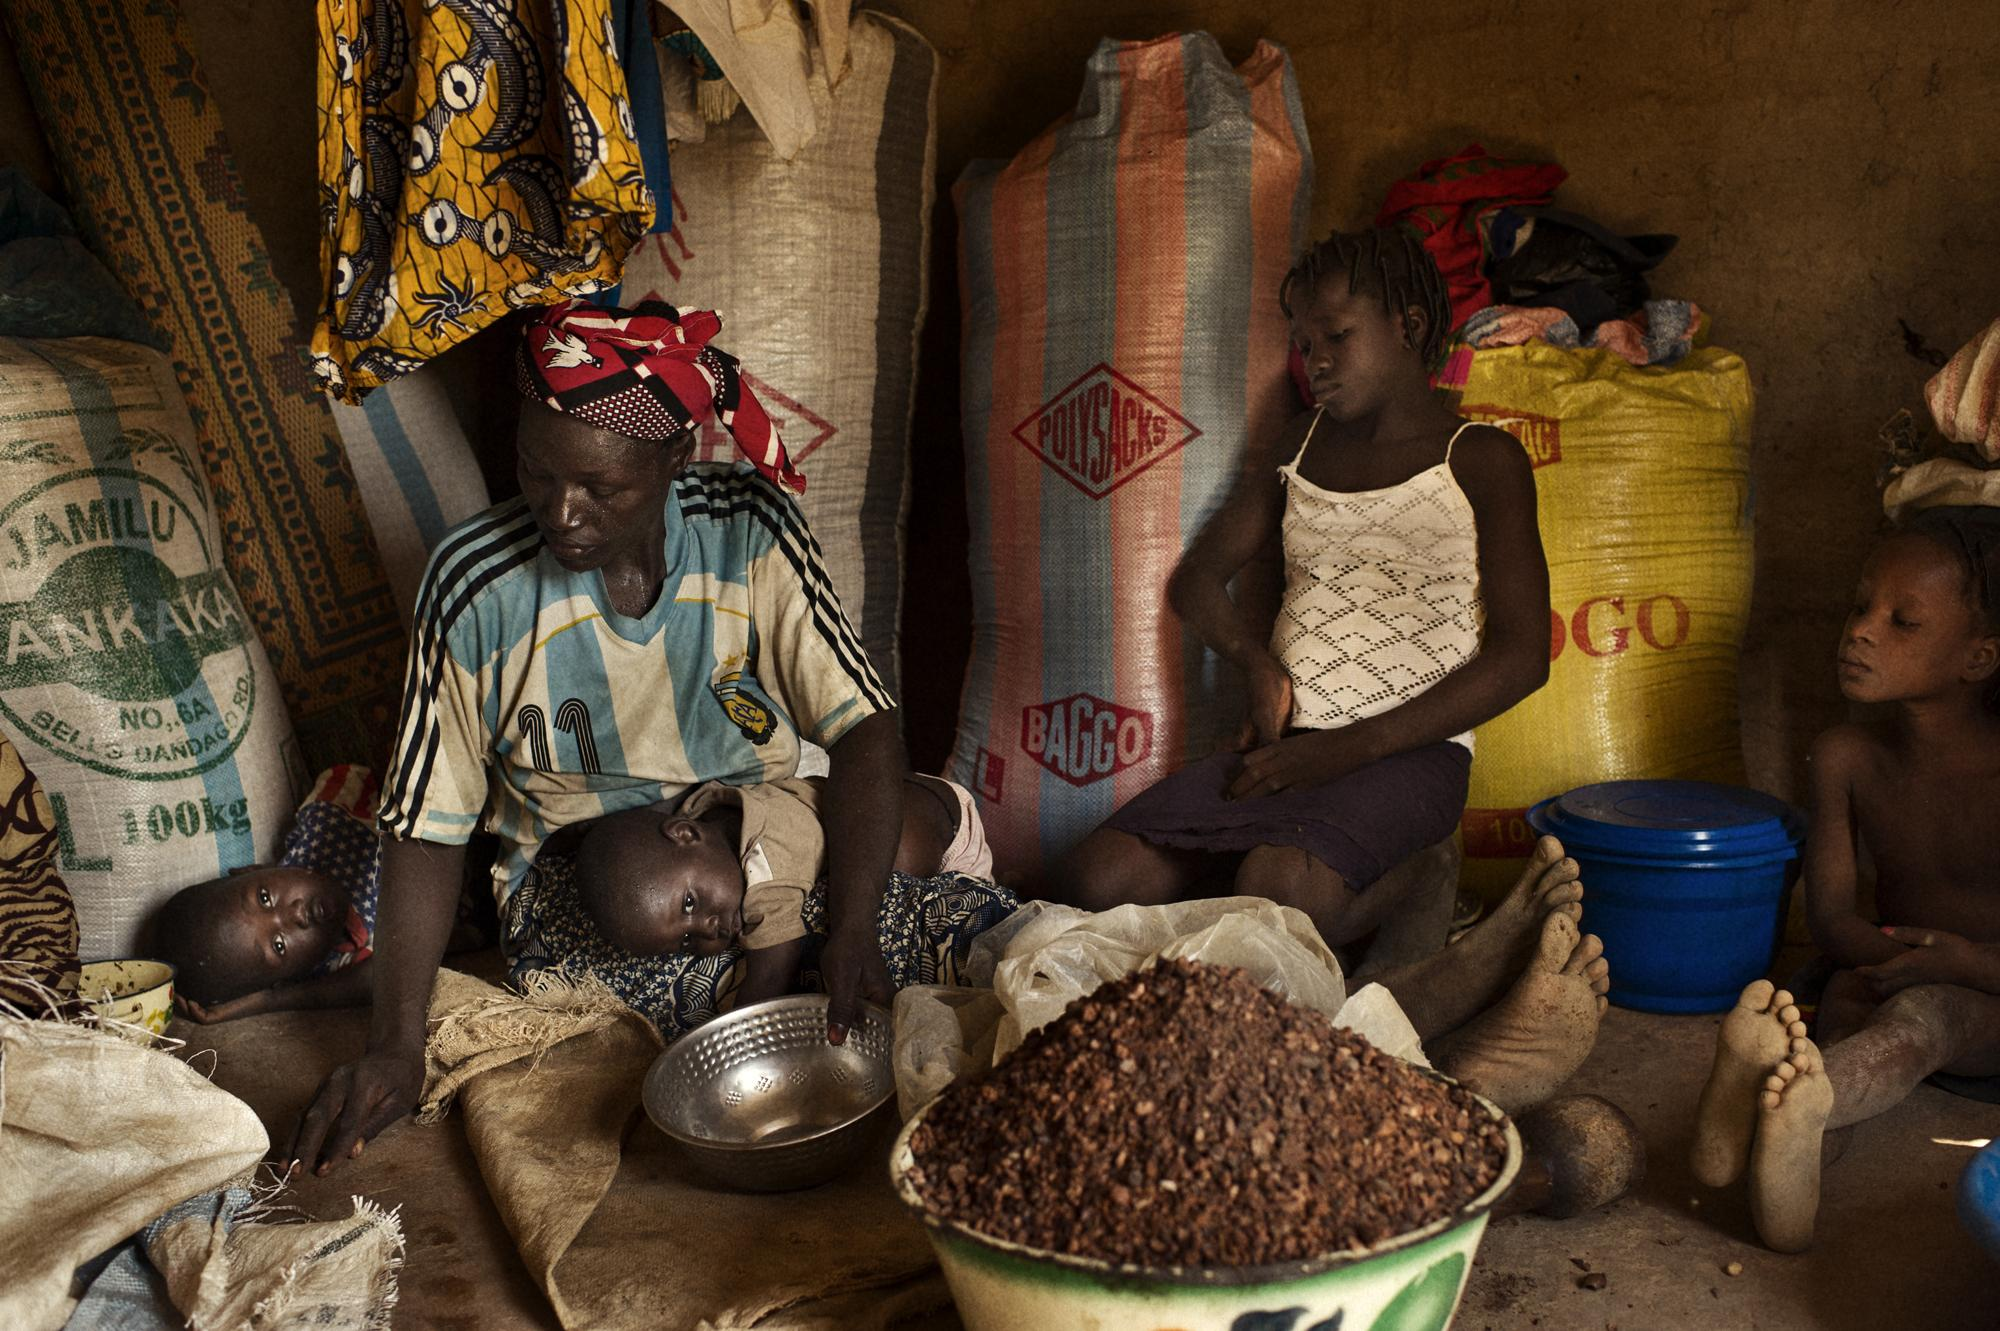 """Burkina Faso, Moyaorgo. November 2011. Aminata Bande is twenty-nine years old, she has three children and makes """"Karite butter"""". She lives and works with her mother Salamata. She started her first microcredit in April 2011with GASCODE program (Groupe d'Appui en Santé, Communication et Developpement) a local organization that supports poor women."""